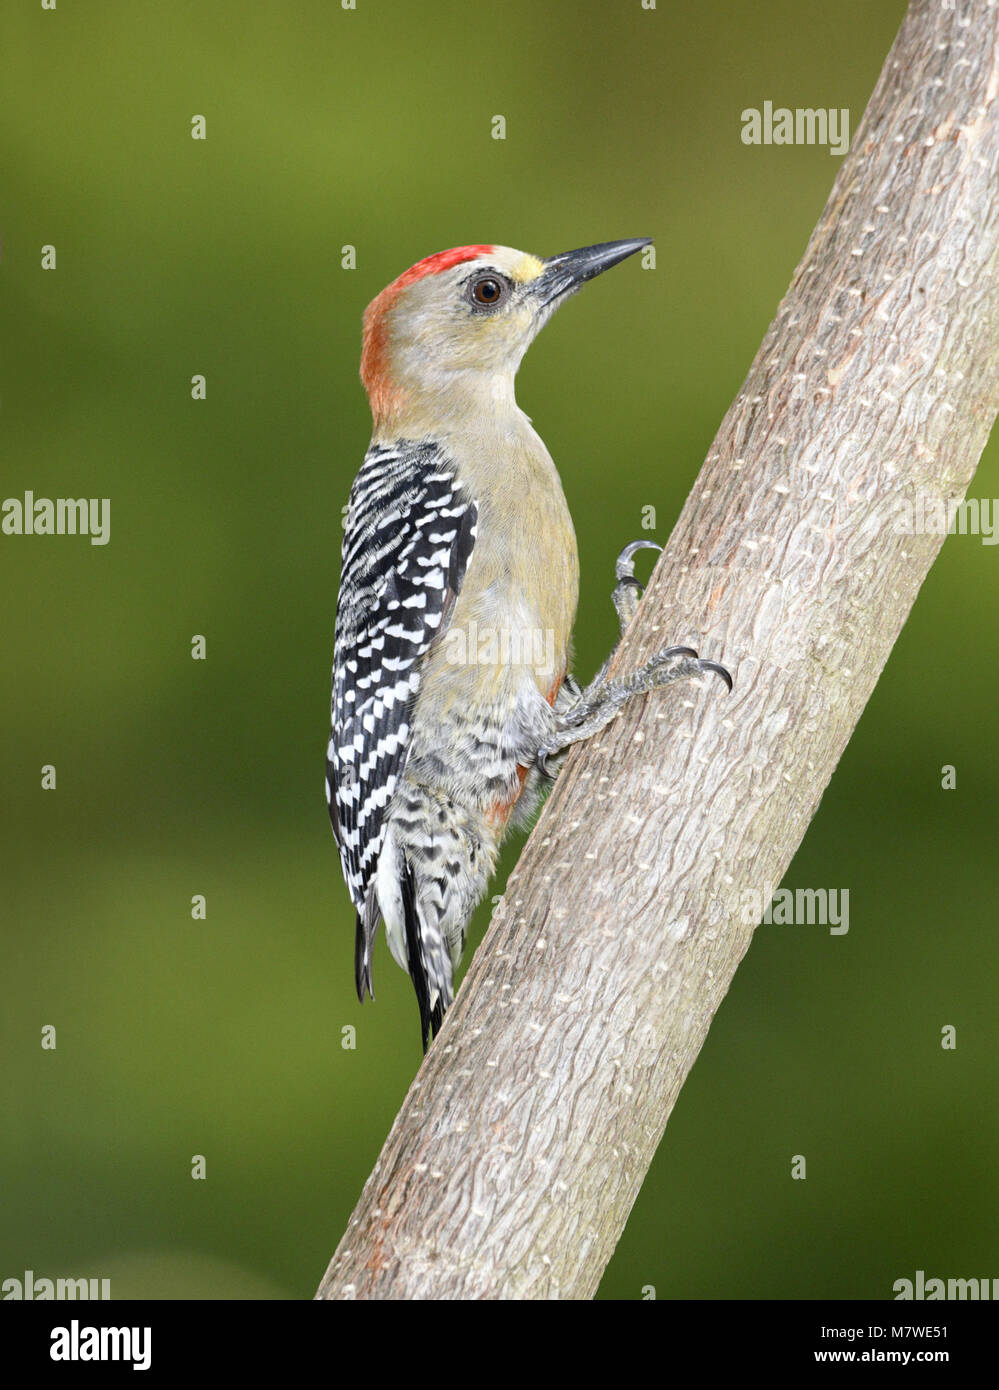 Red-crowned Woodpecker - Melanerpes rubricapillus - Stock Image